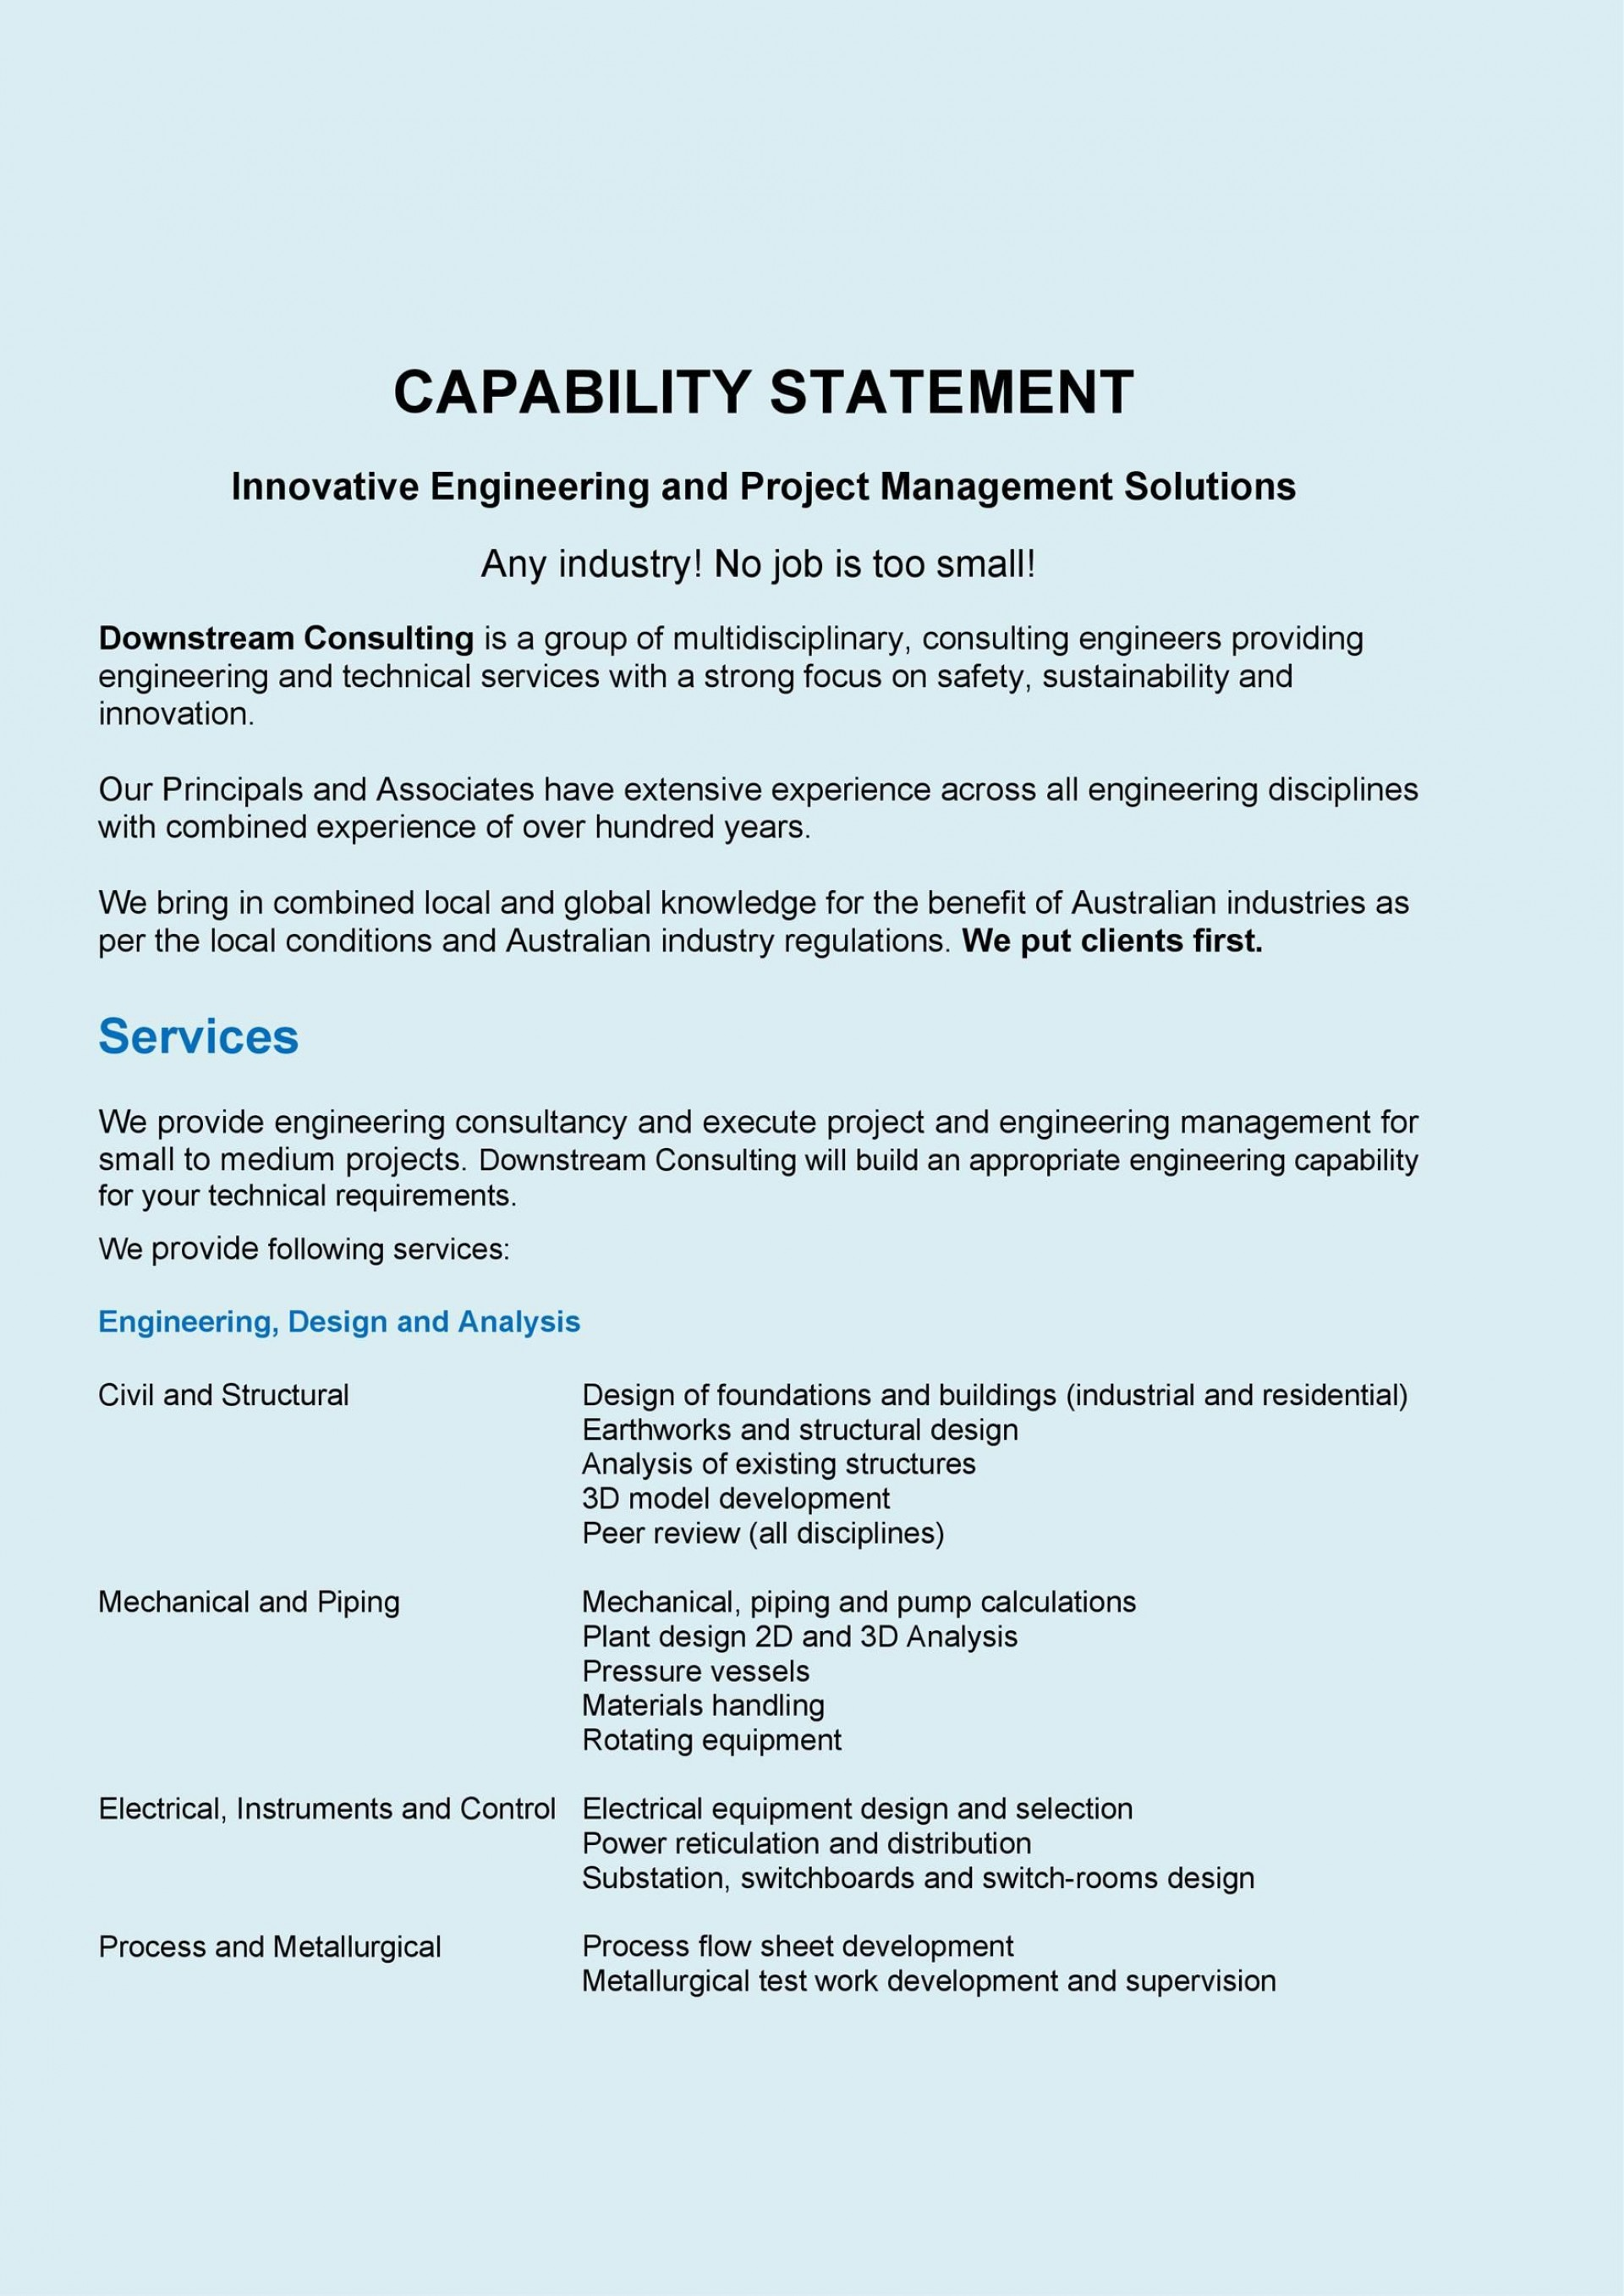 005 Rare Capability Statement Template Free Highest Quality  Word Editable Design1920